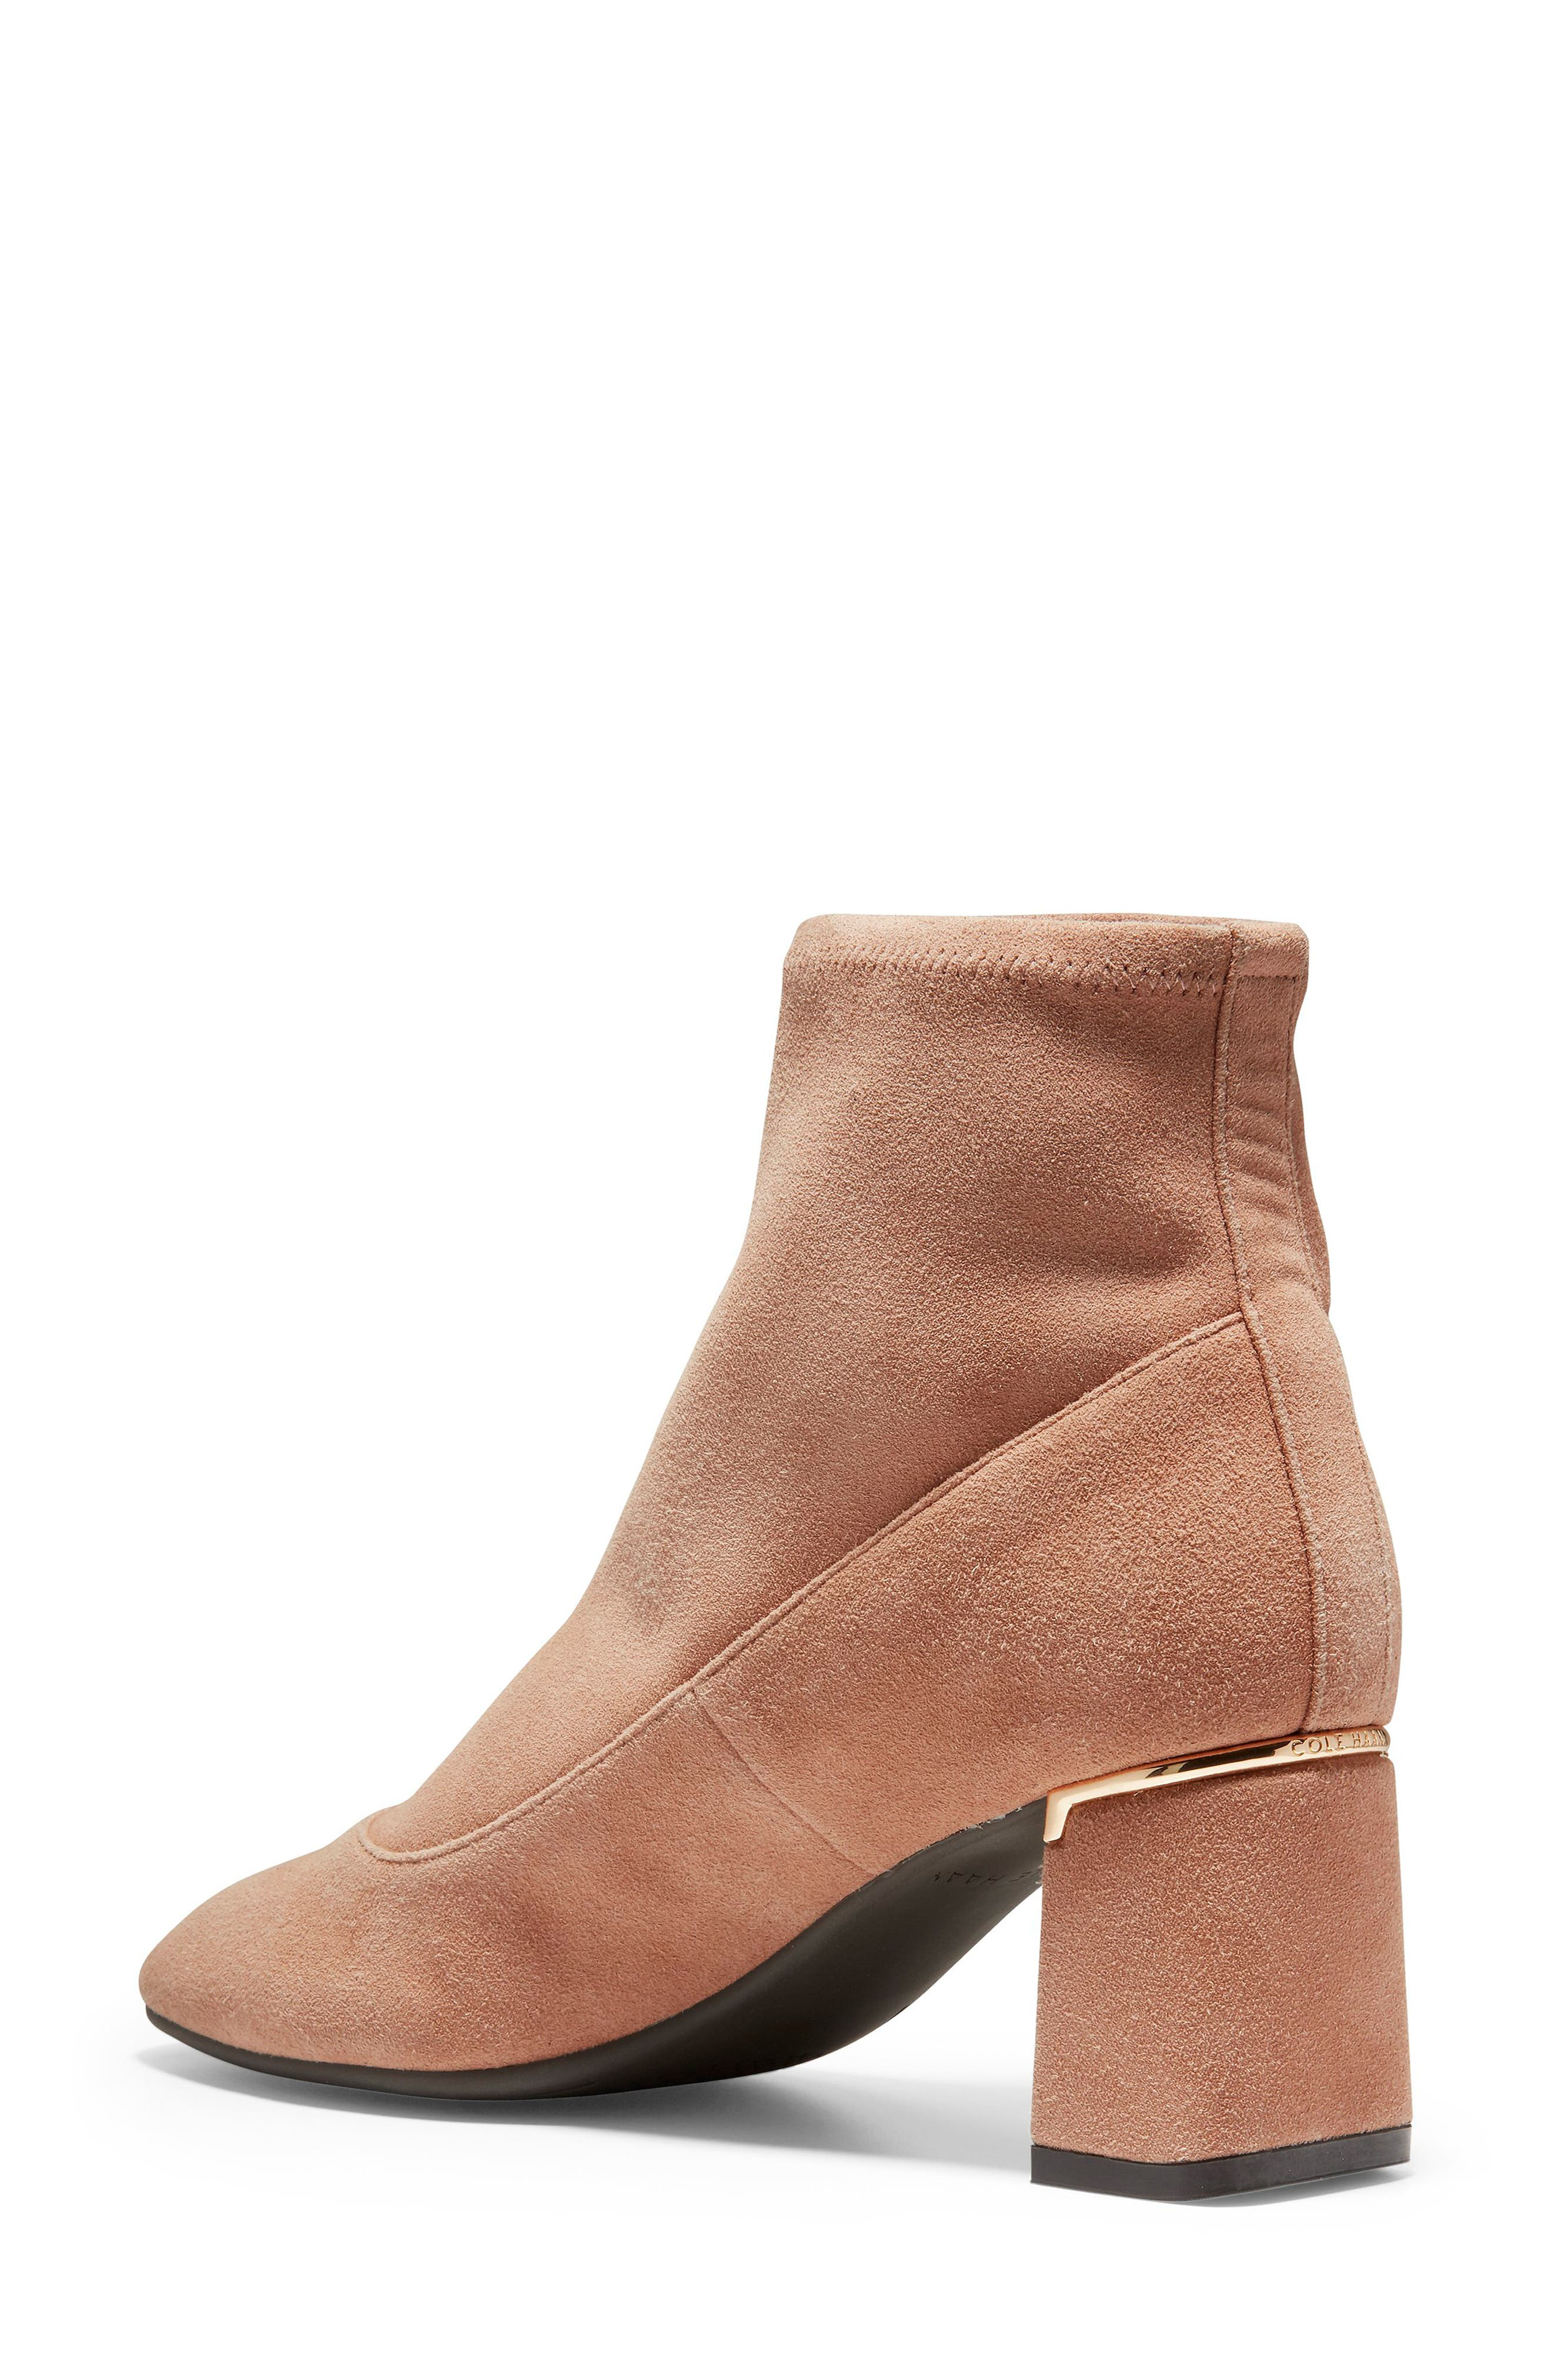 Laree Stretch Bootie,                             Alternate thumbnail 2, color,                             MOCHA STRETCH SUEDE